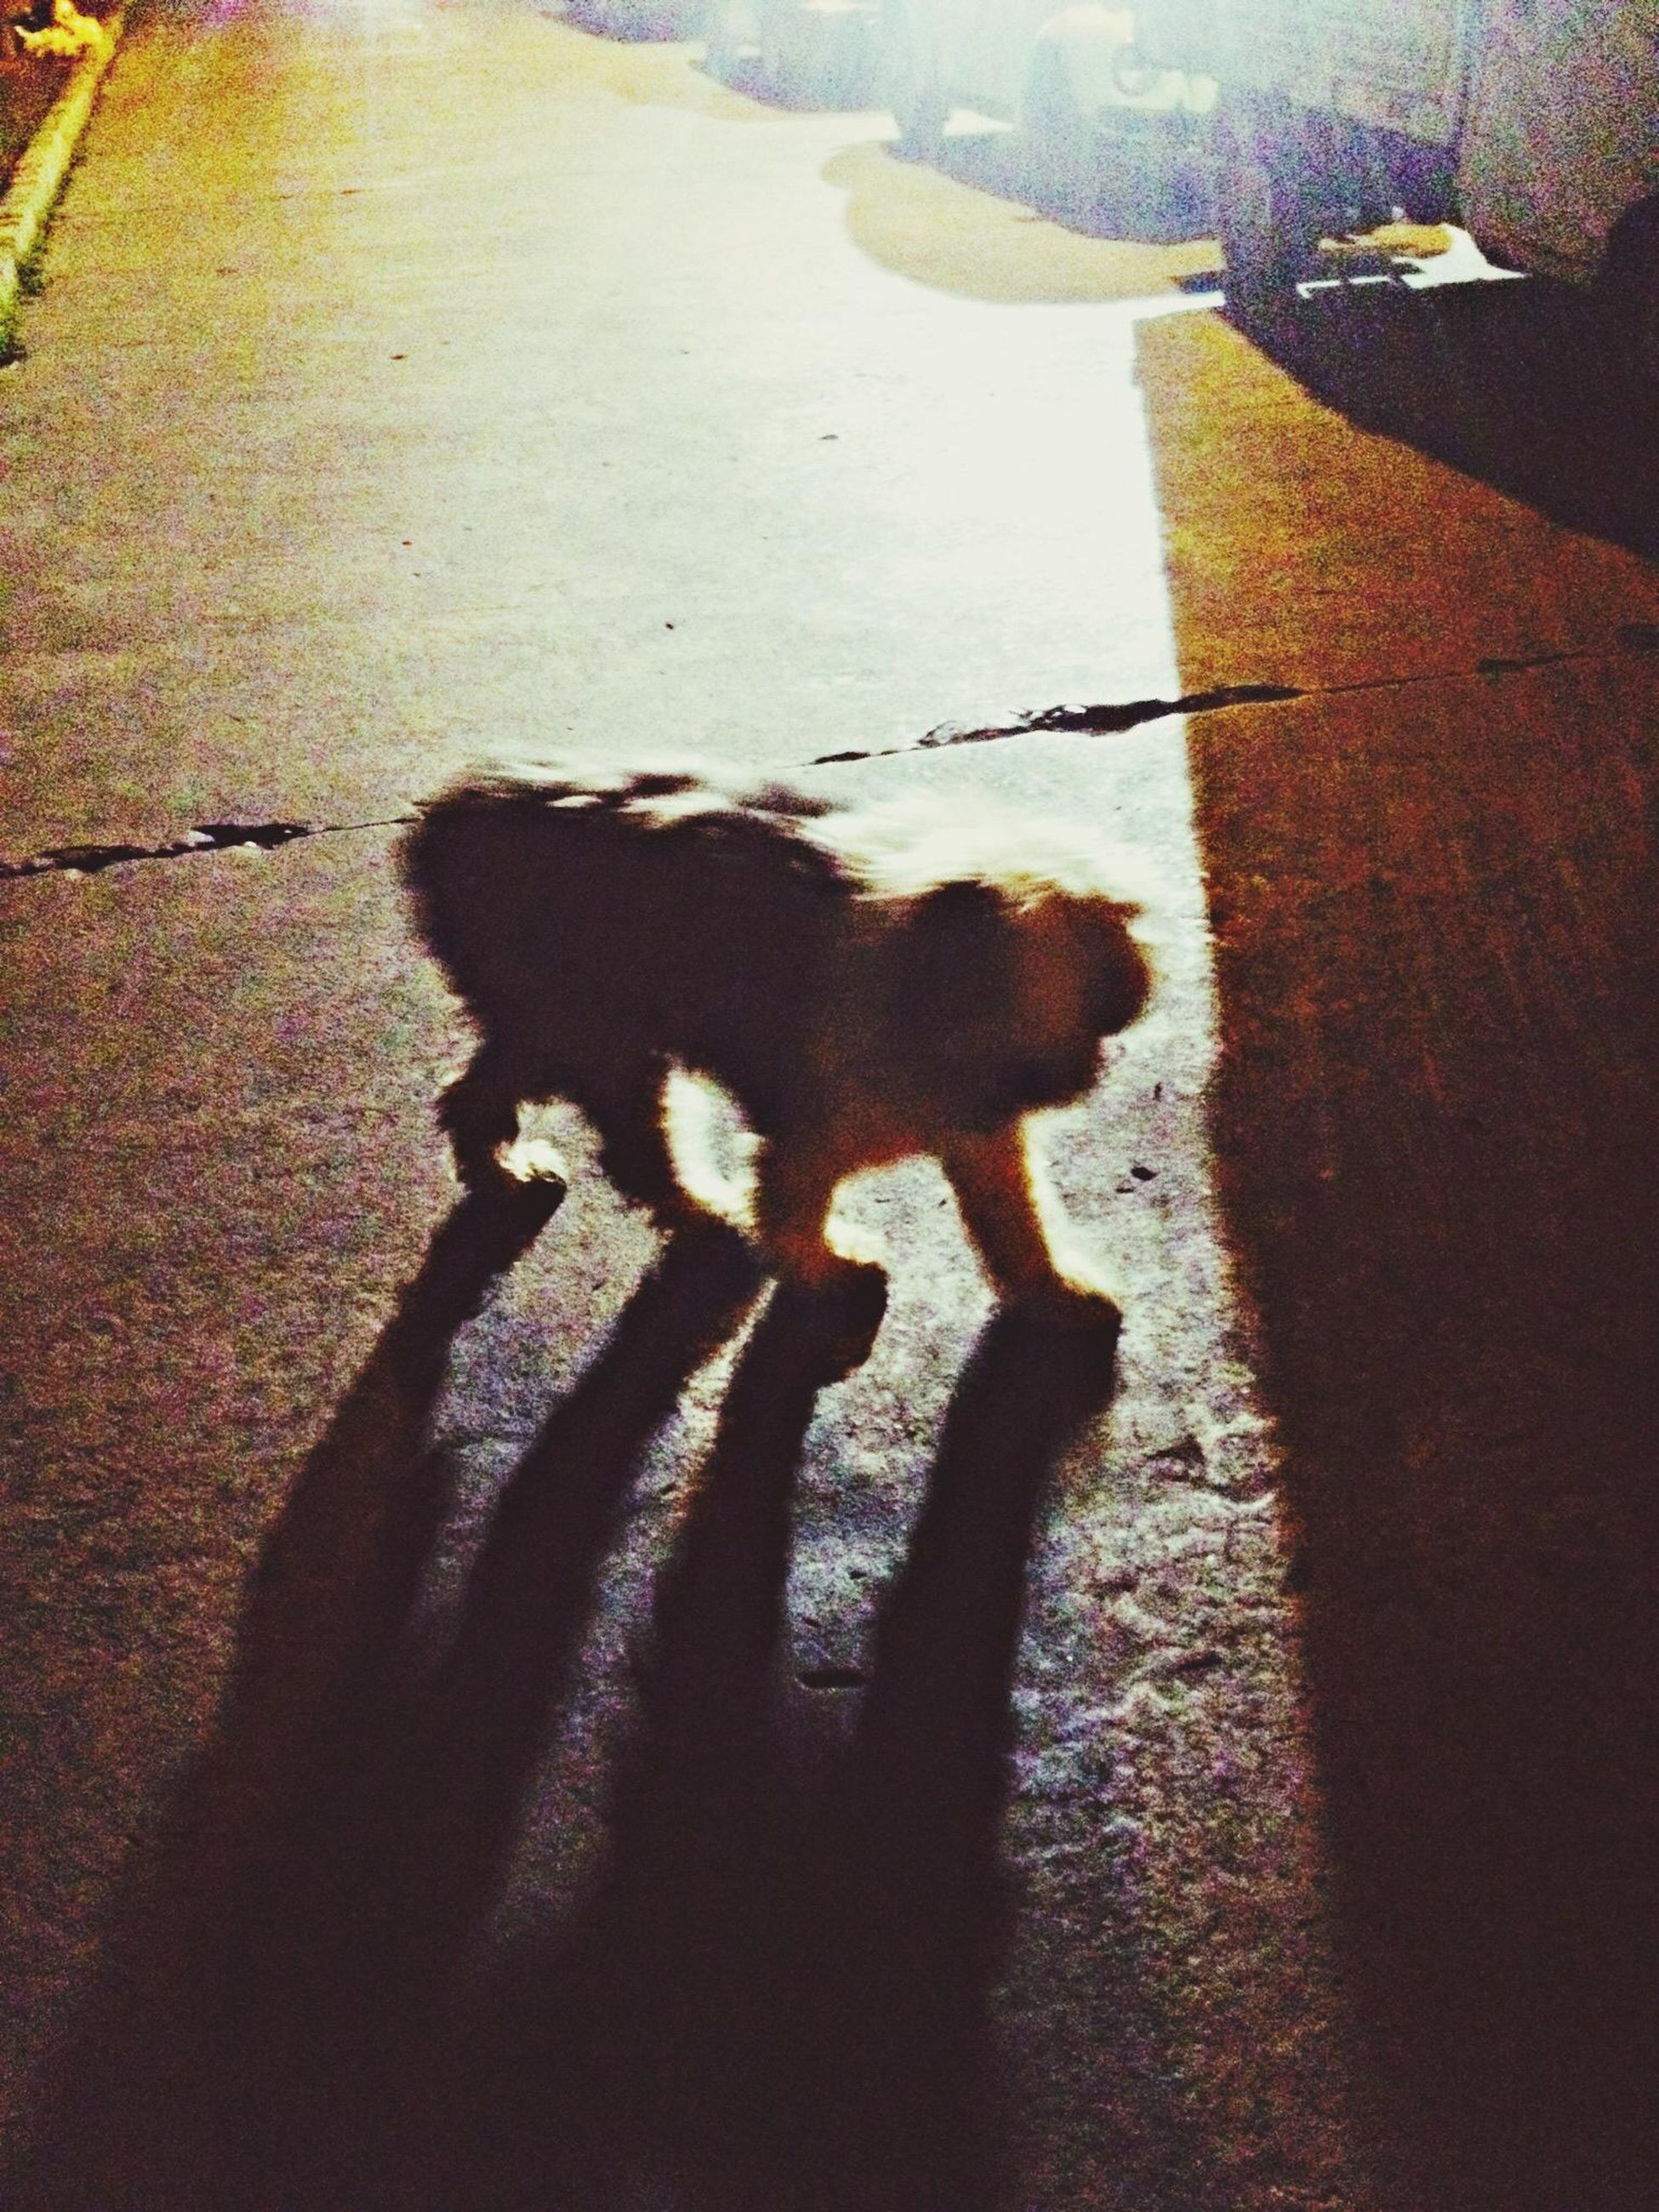 shadow, high angle view, street, focus on shadow, road, sunlight, dog, unrecognizable person, transportation, asphalt, road marking, walking, mammal, domestic animals, outdoors, day, the way forward, men